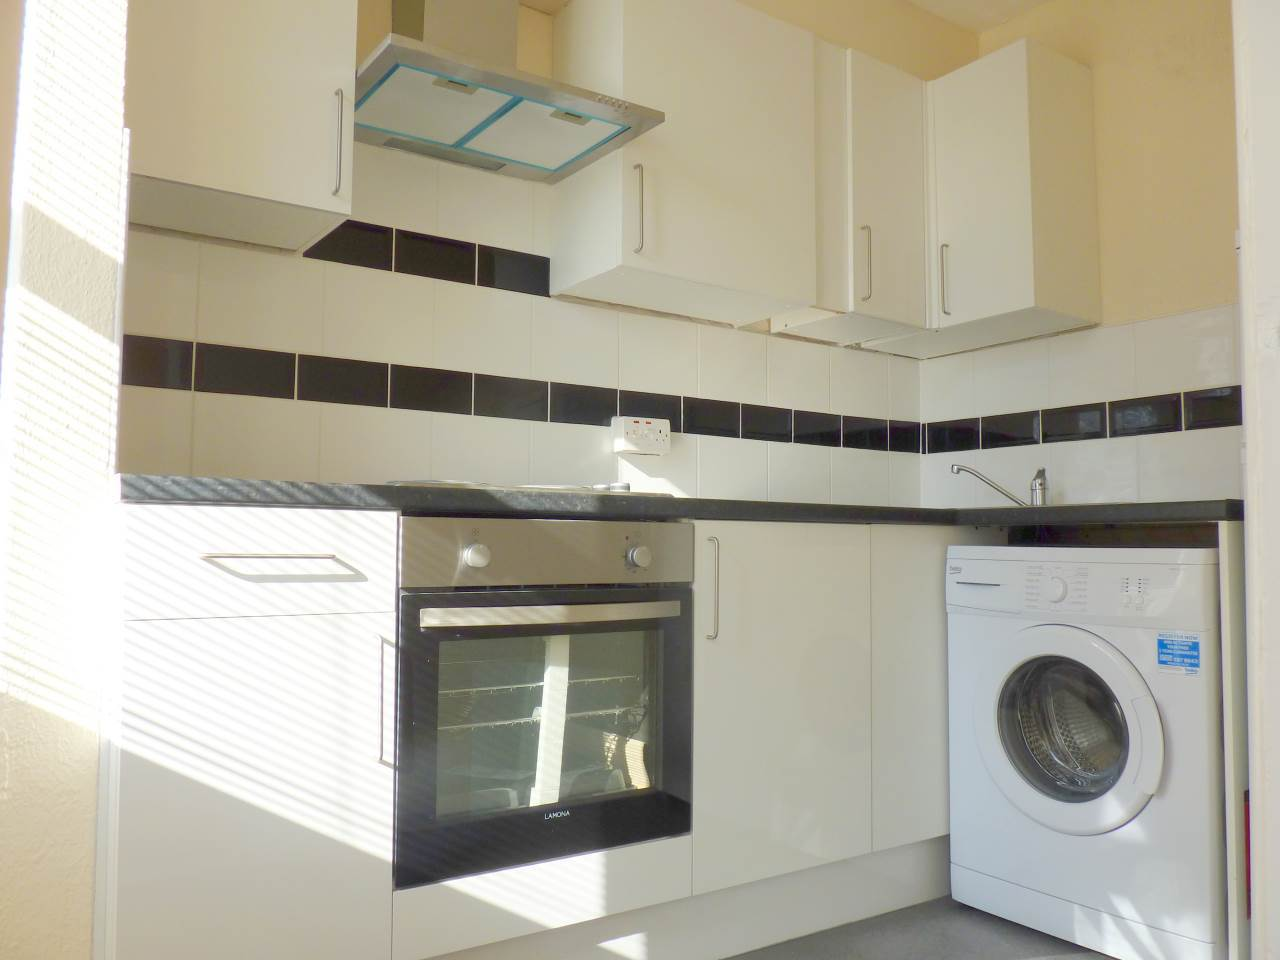 2 bed flat to rent in Haverhill - Property Image 1